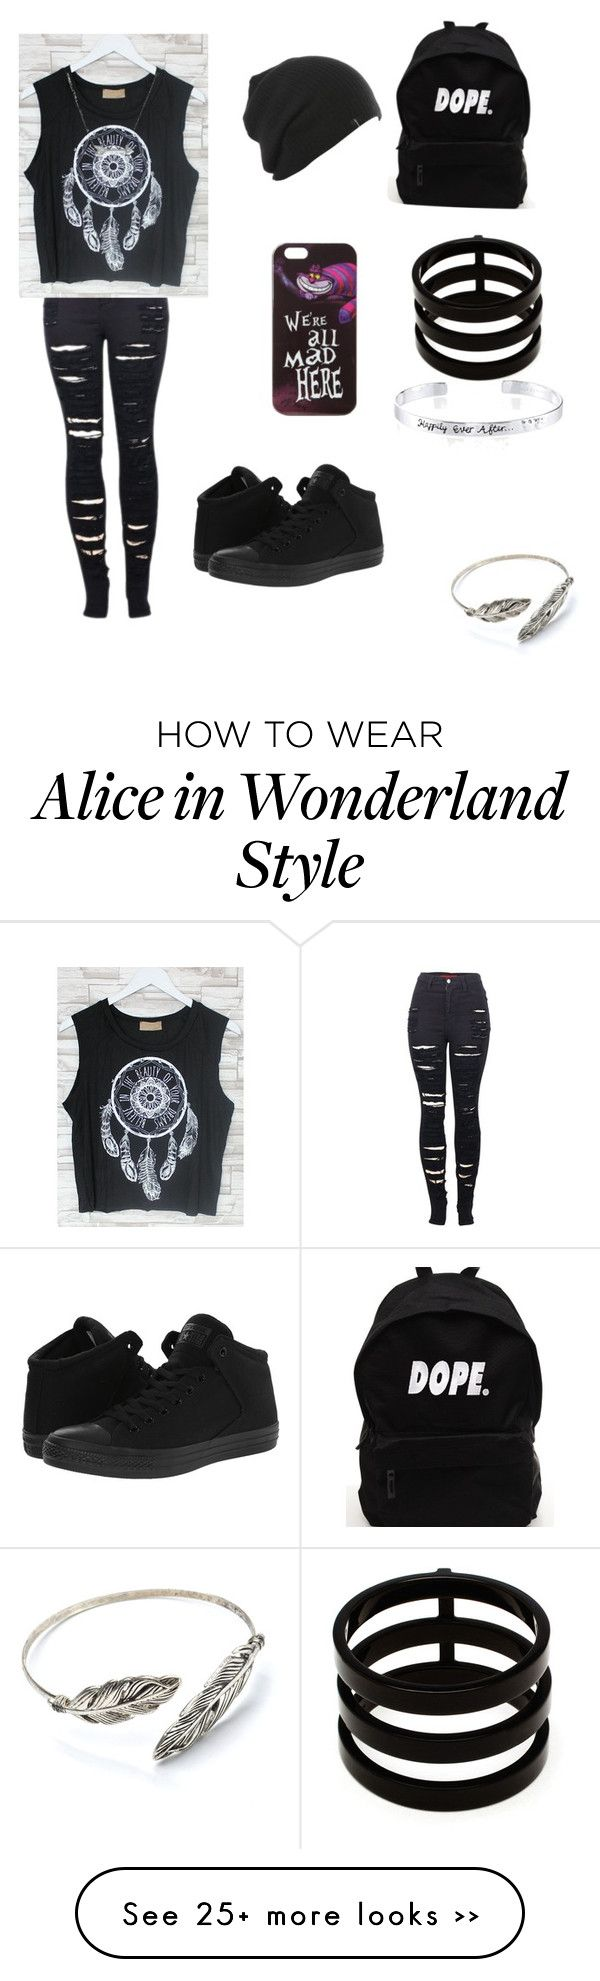 """Untitled #1"" by mirandafw on Polyvore featuring 2LUV, Converse, Disney, Adina Reyter and Repossi"